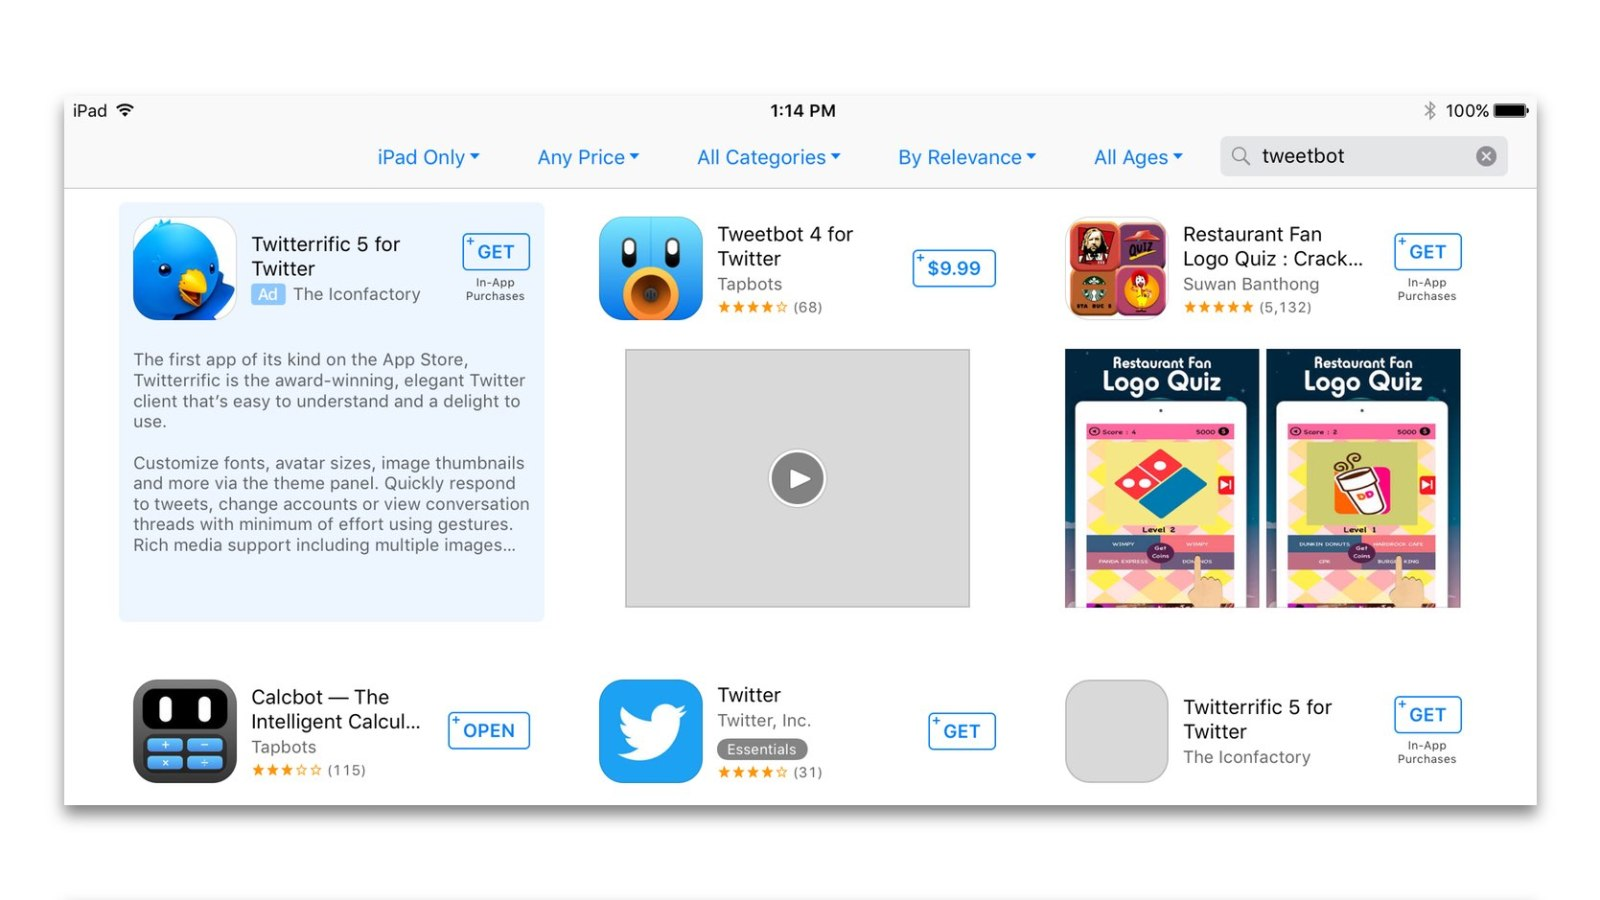 Opinion: Search Ads in the App Store introduce multiple new ways for developers to compete